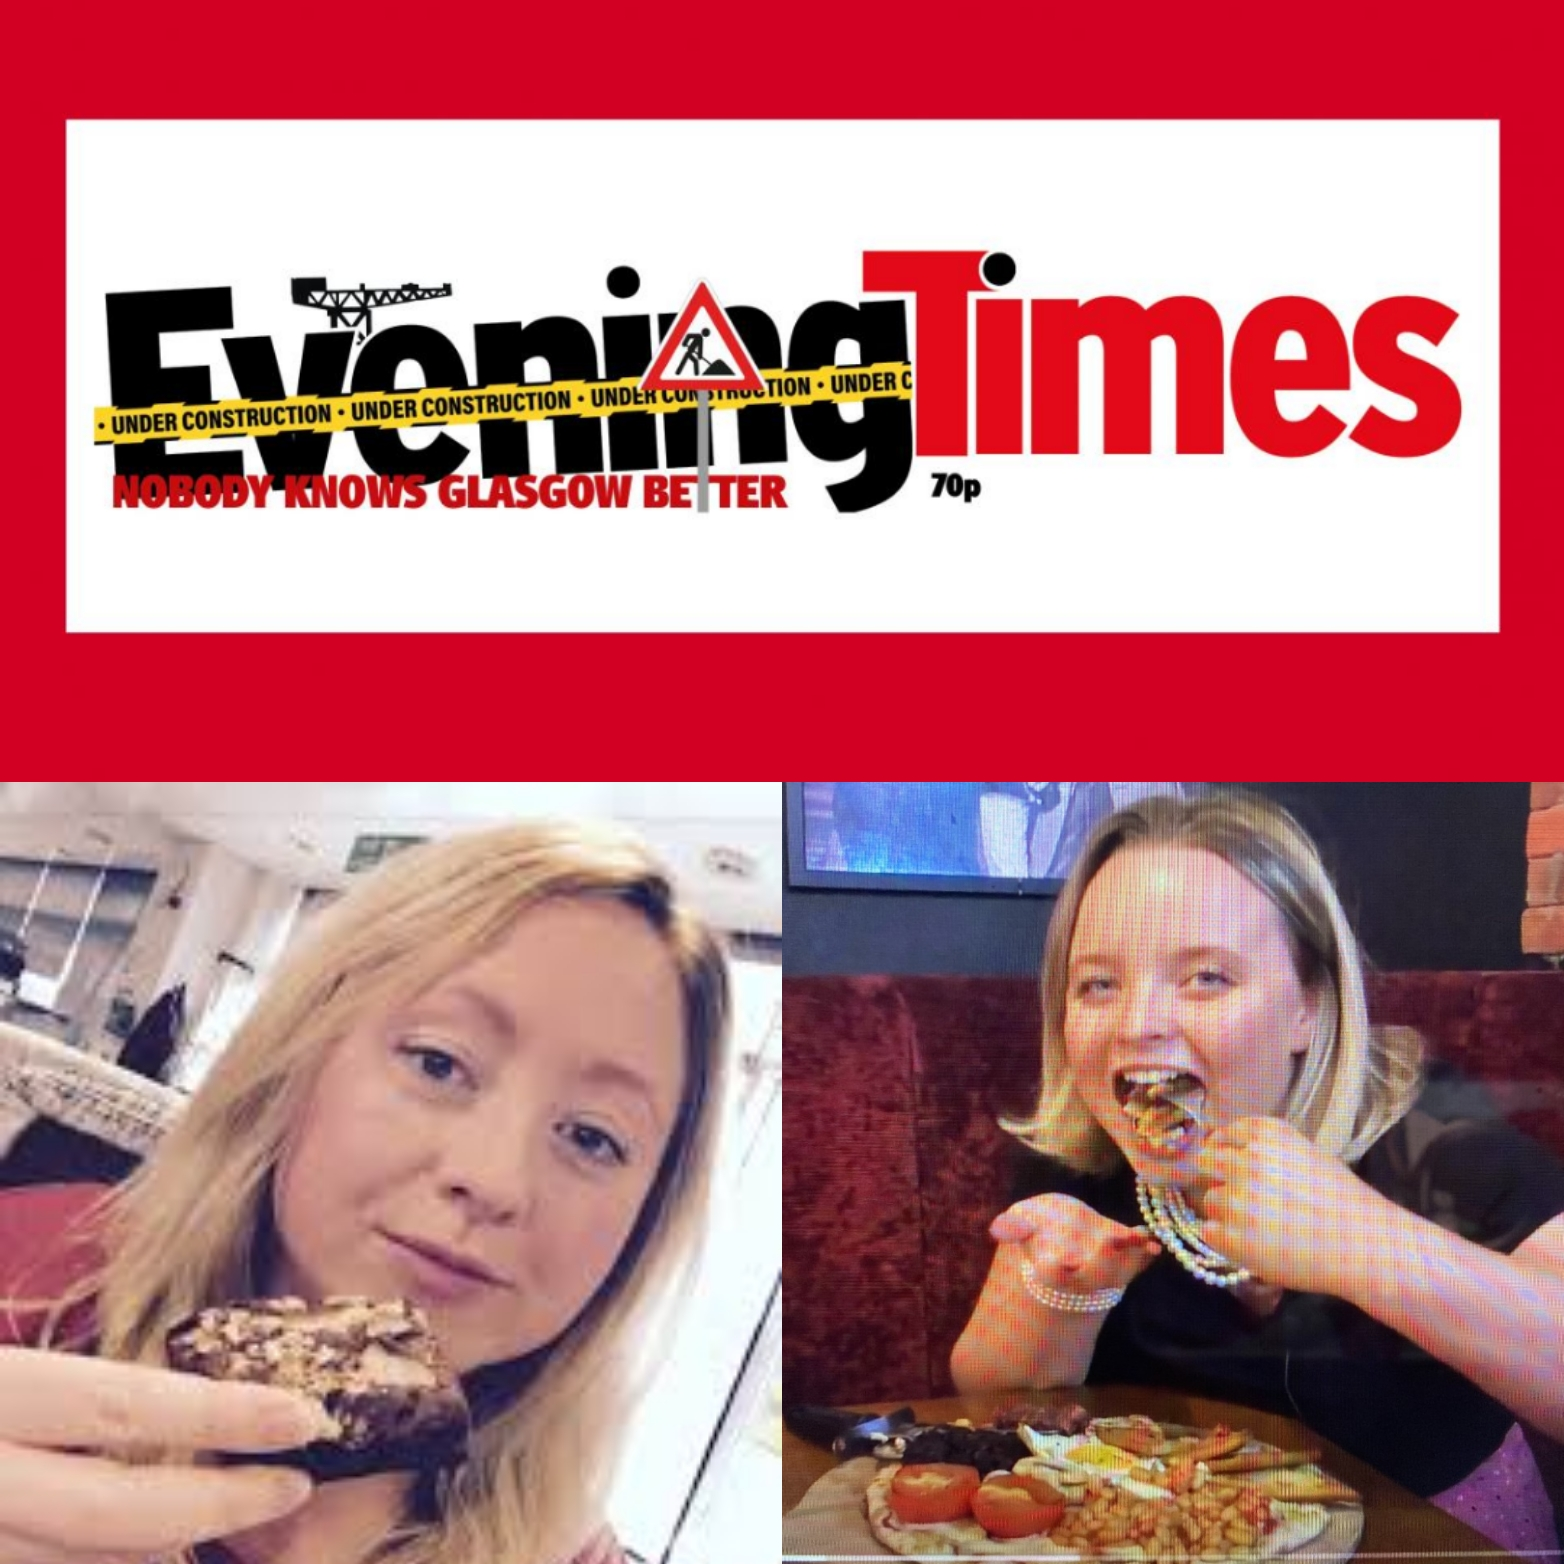 """Game Over For Lying Journo Creeps """"Catriona Stewart And Carla Jenkins"""" Exposed For Fake News Misinformation Via Evening Times Article, As Addy Agame Was Taken Off The Register Because It Was Revealed That All False Accusers Lied!"""